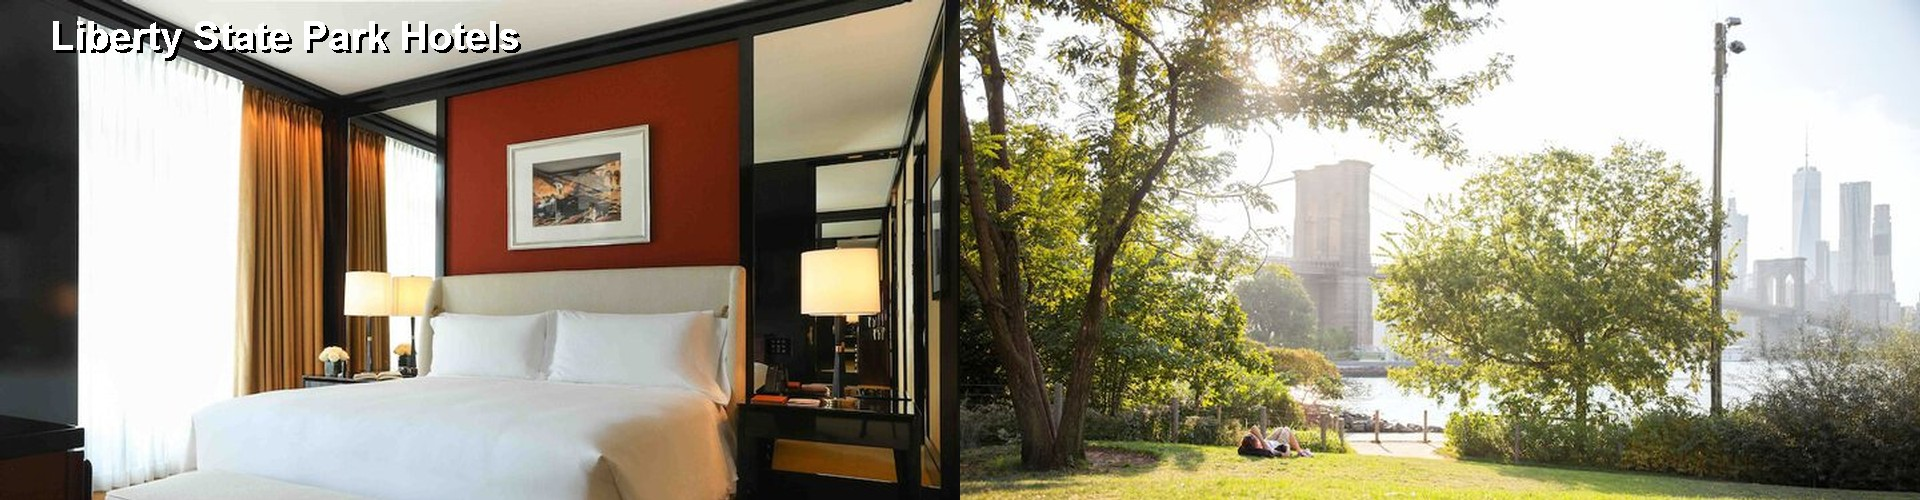 5 Best Hotels near Liberty State Park